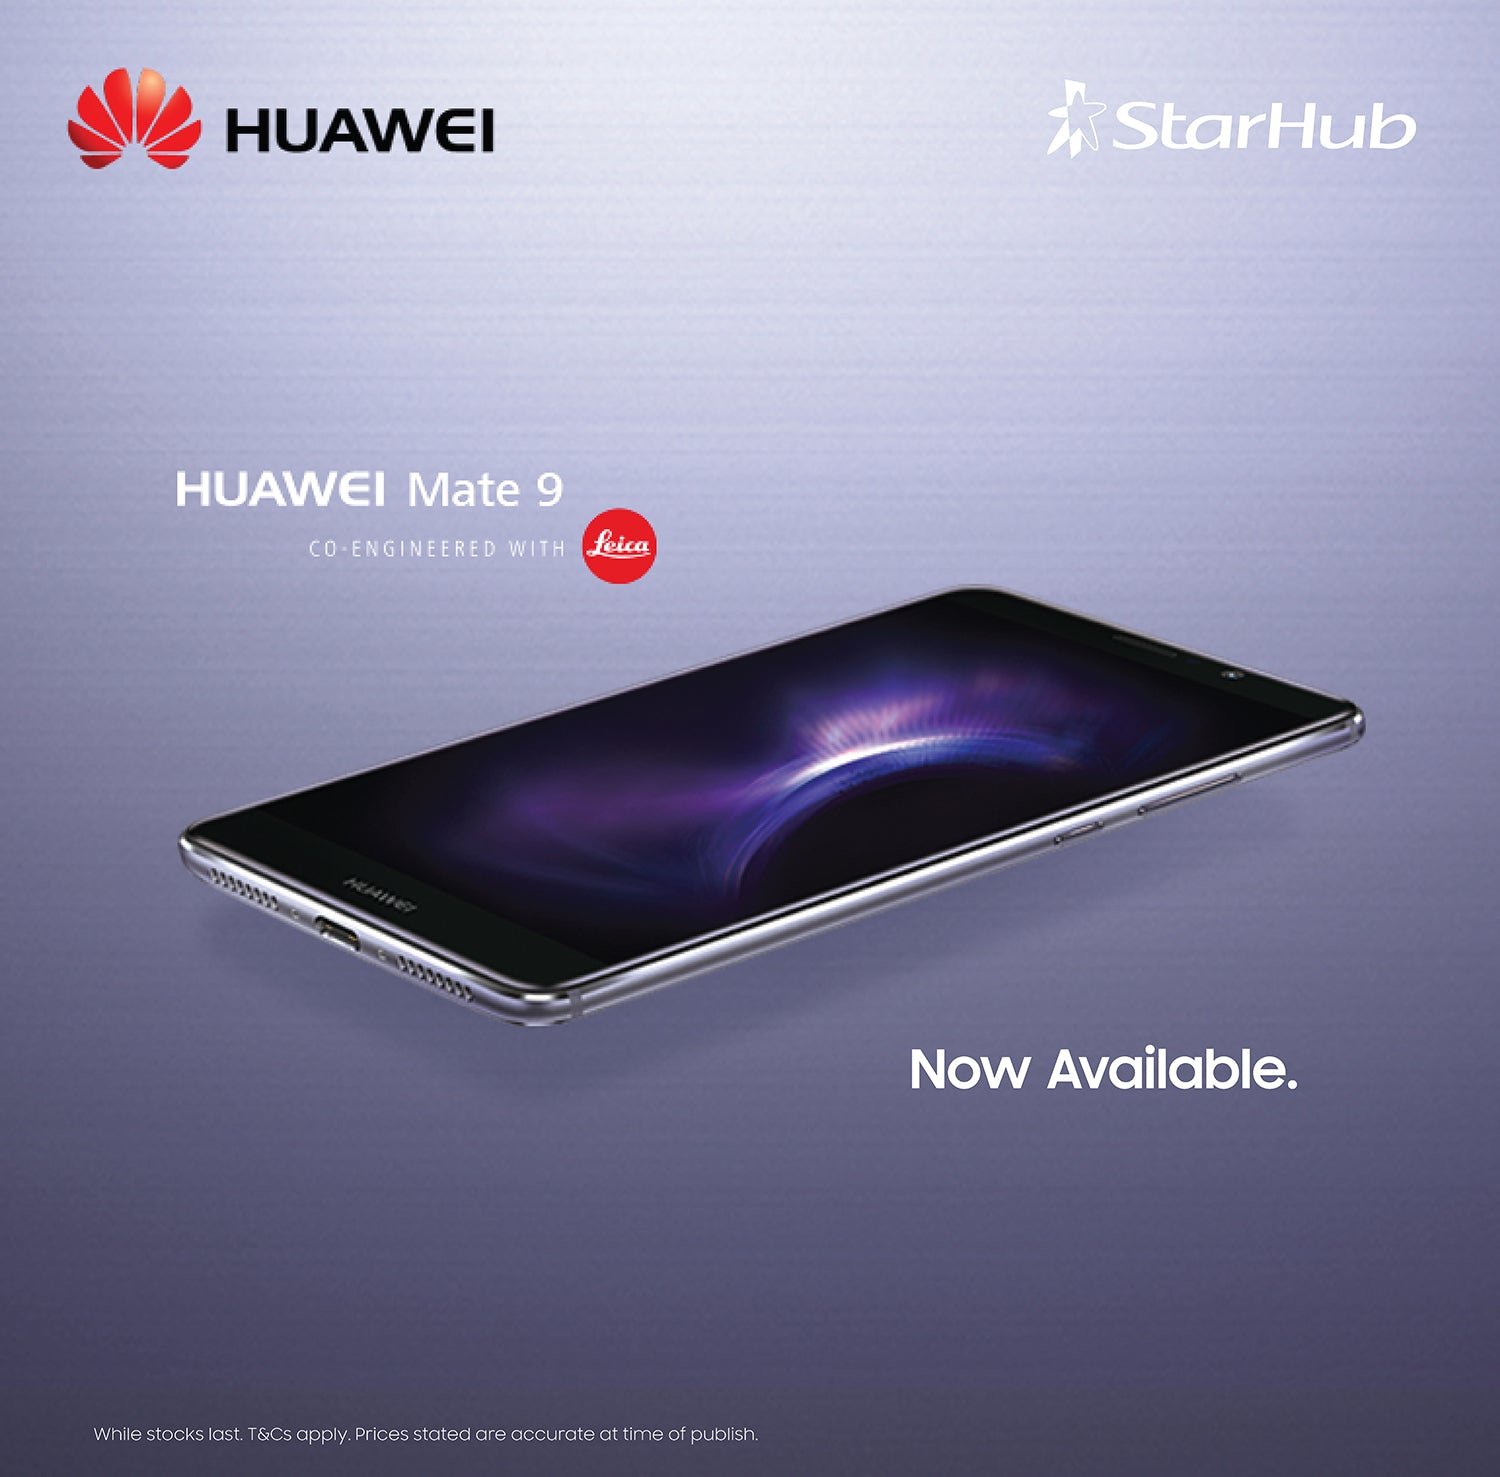 Huawei Singapore Mate 9 StarHub Sale